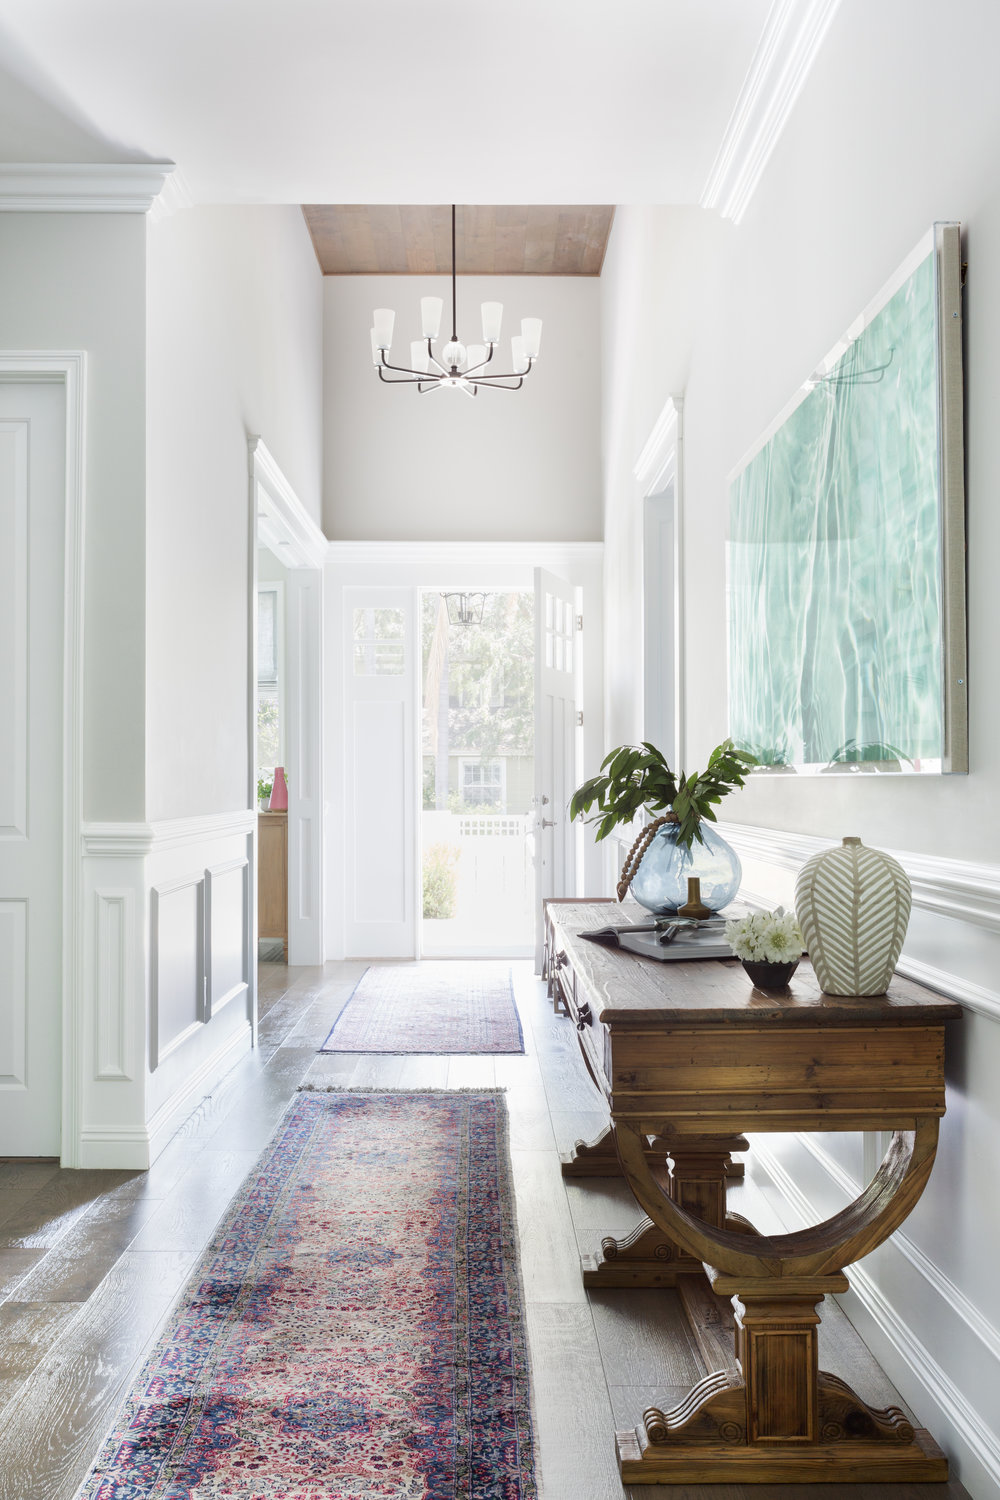 Bright, bold traditional entryway design by Lindsey Brooke Design.jpg.jpg